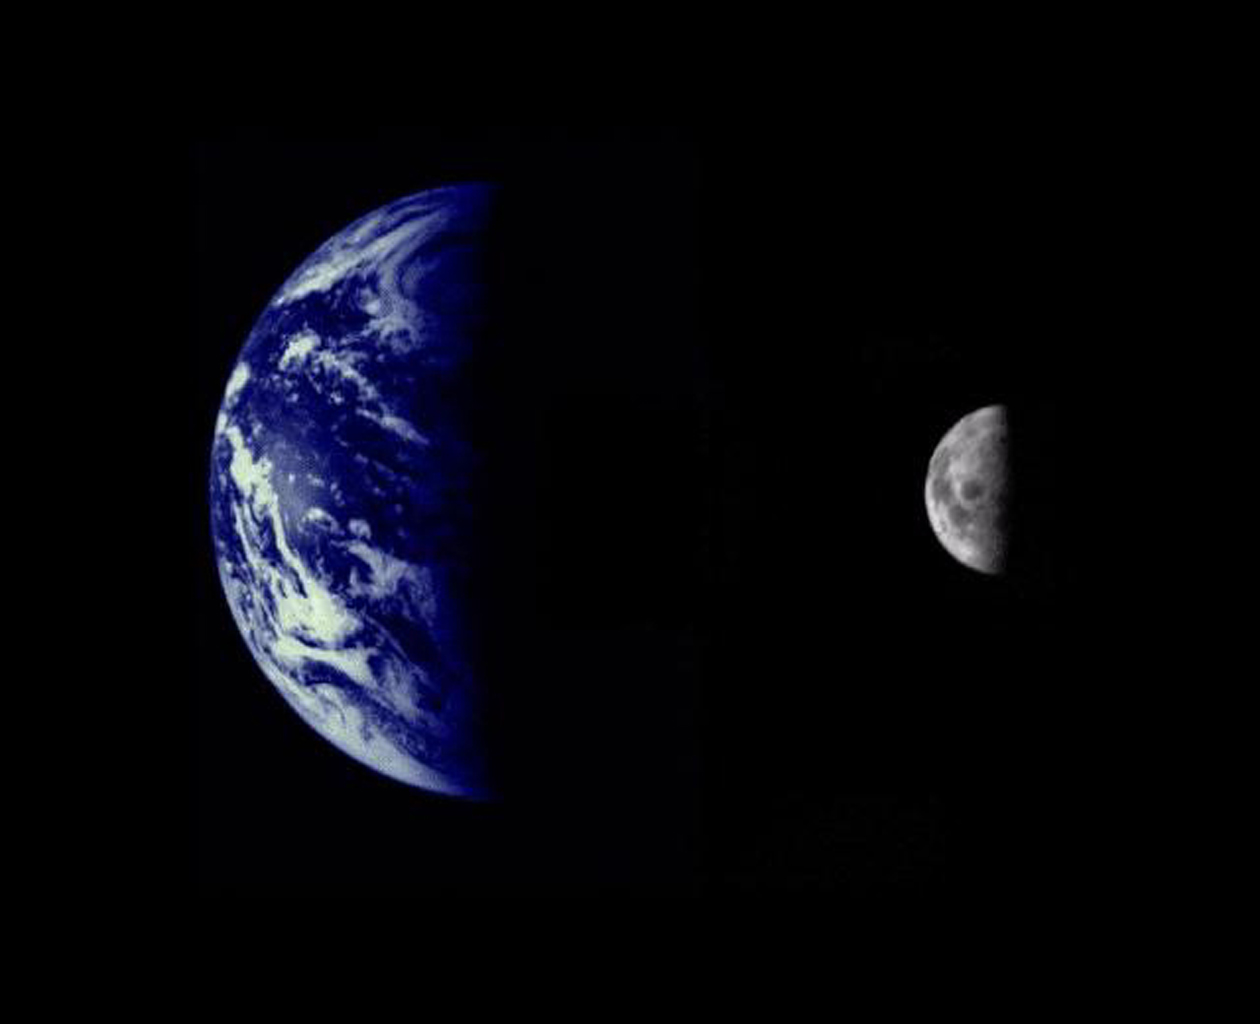 The Earth and Moon were imaged by NASA's Mariner 10, launched on November 3, 1973, from 2.6 million km while completing the first ever Earth-Moon encounter by a spacecraft capable of returning high resolution digital color image data.